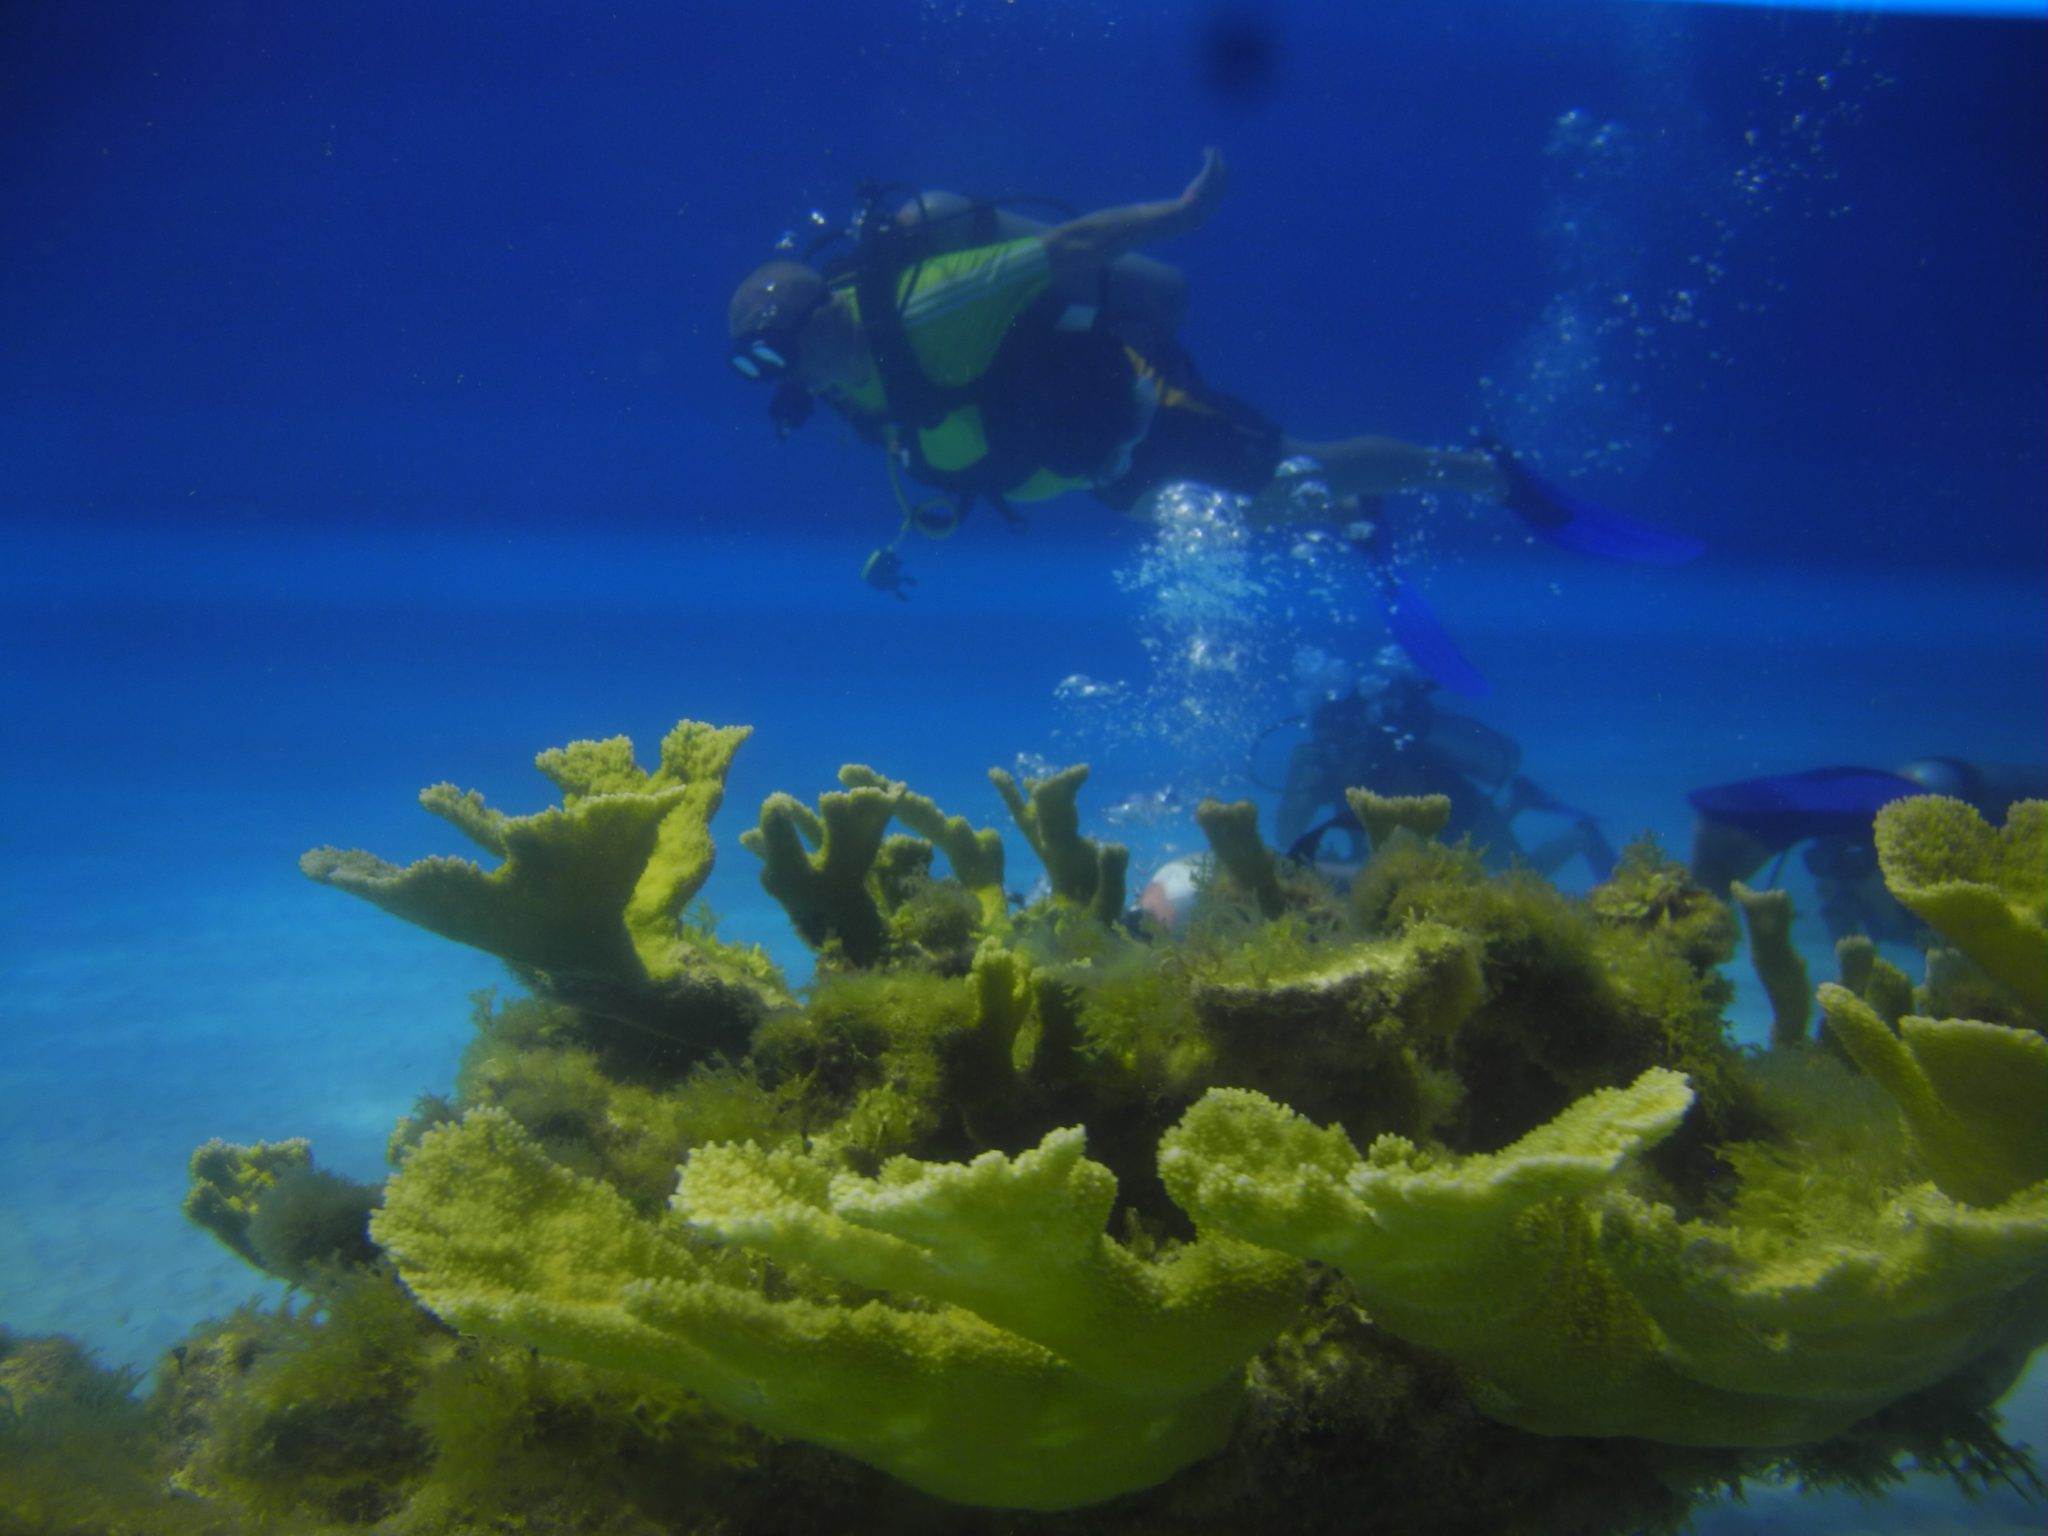 Cancun night scuba diving experience in Mexico (One tank)